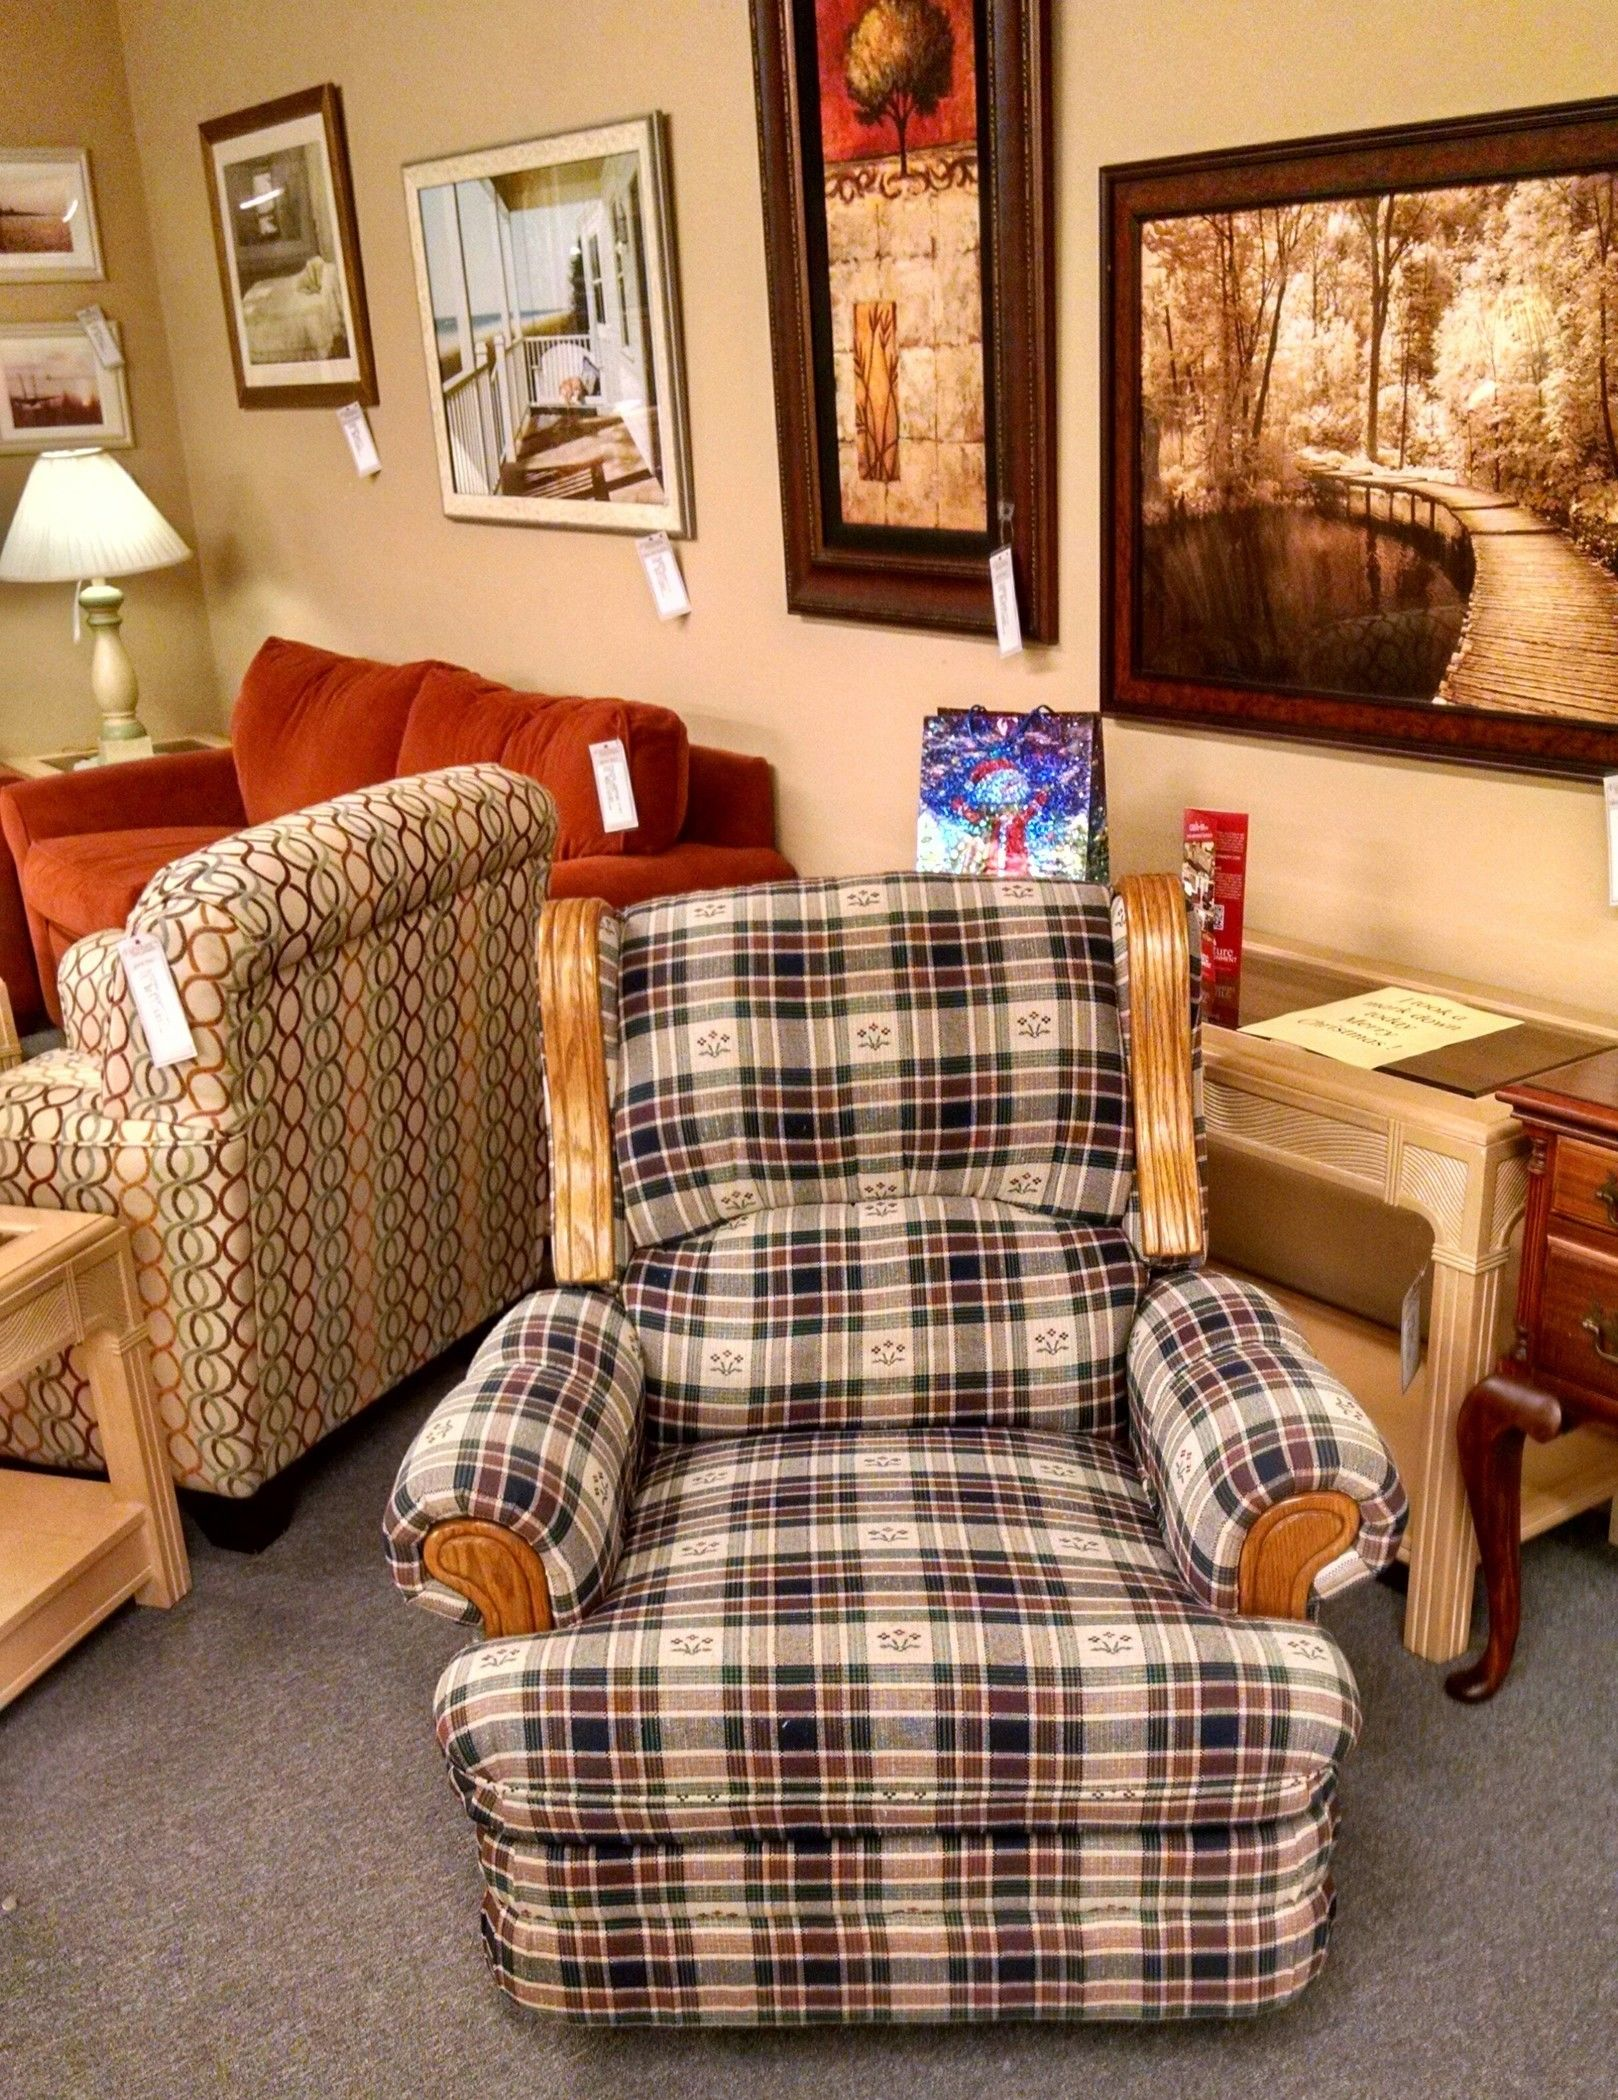 Plaid Country Recliner Chair Delmarva Furniture Consignment